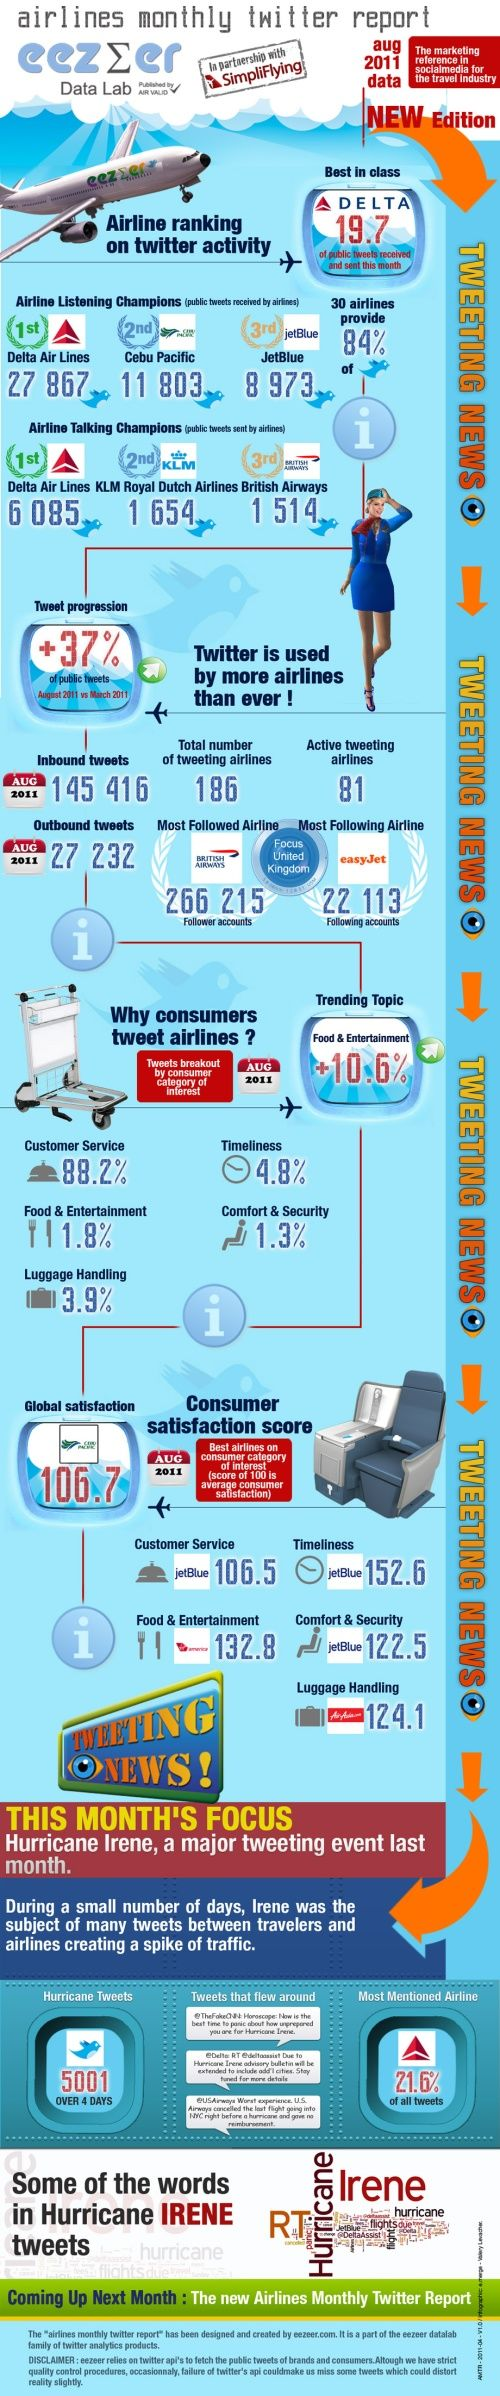 airlines-twitter-august-2011